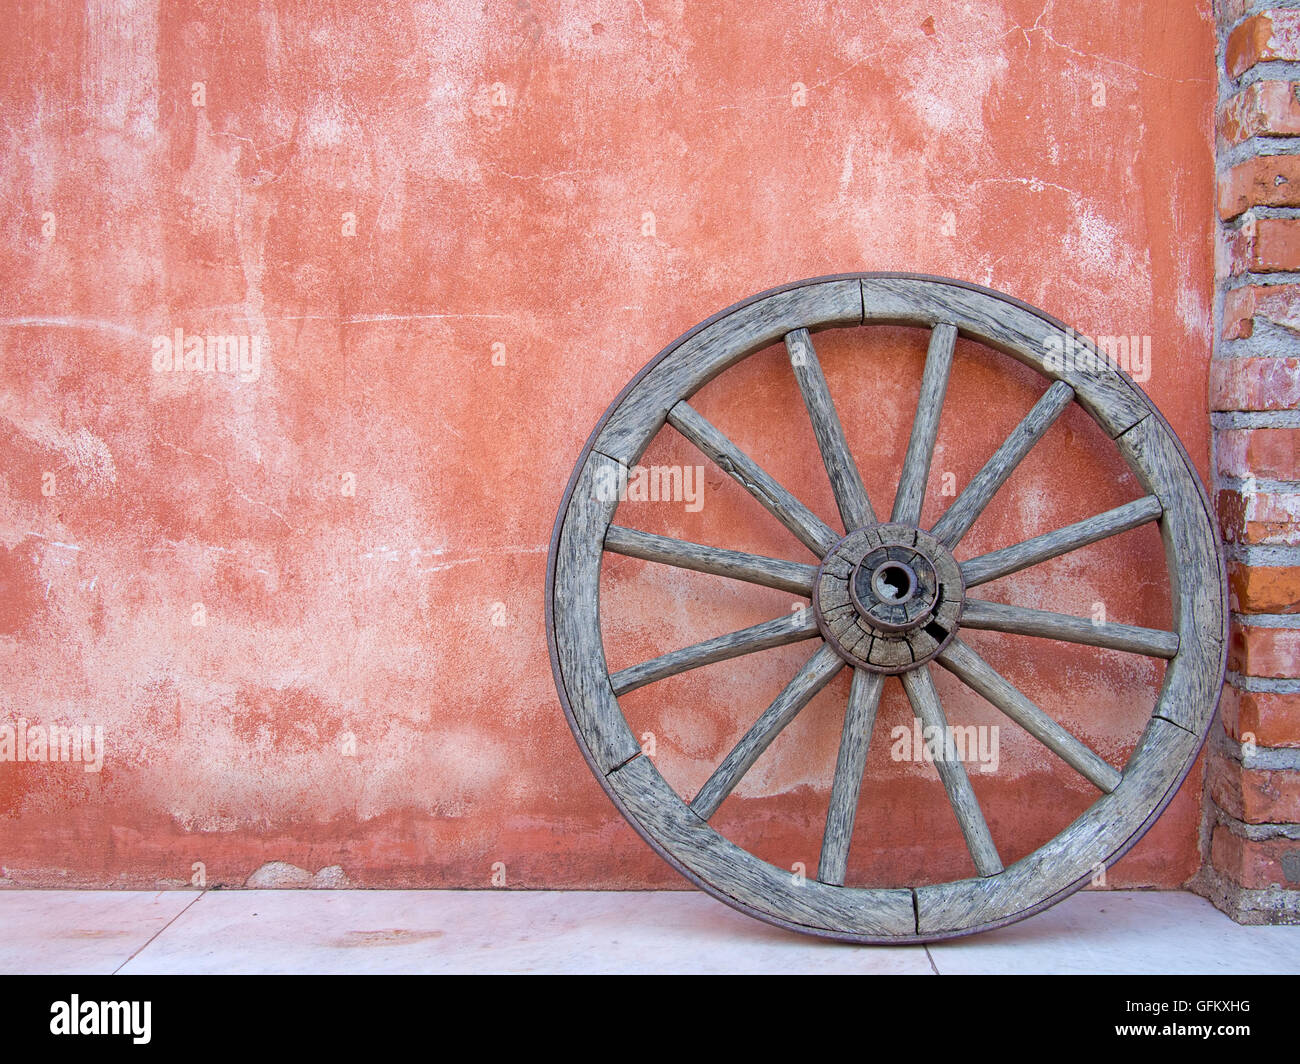 Vintage cartwheel against terracotta wall, Italy. - Stock Image